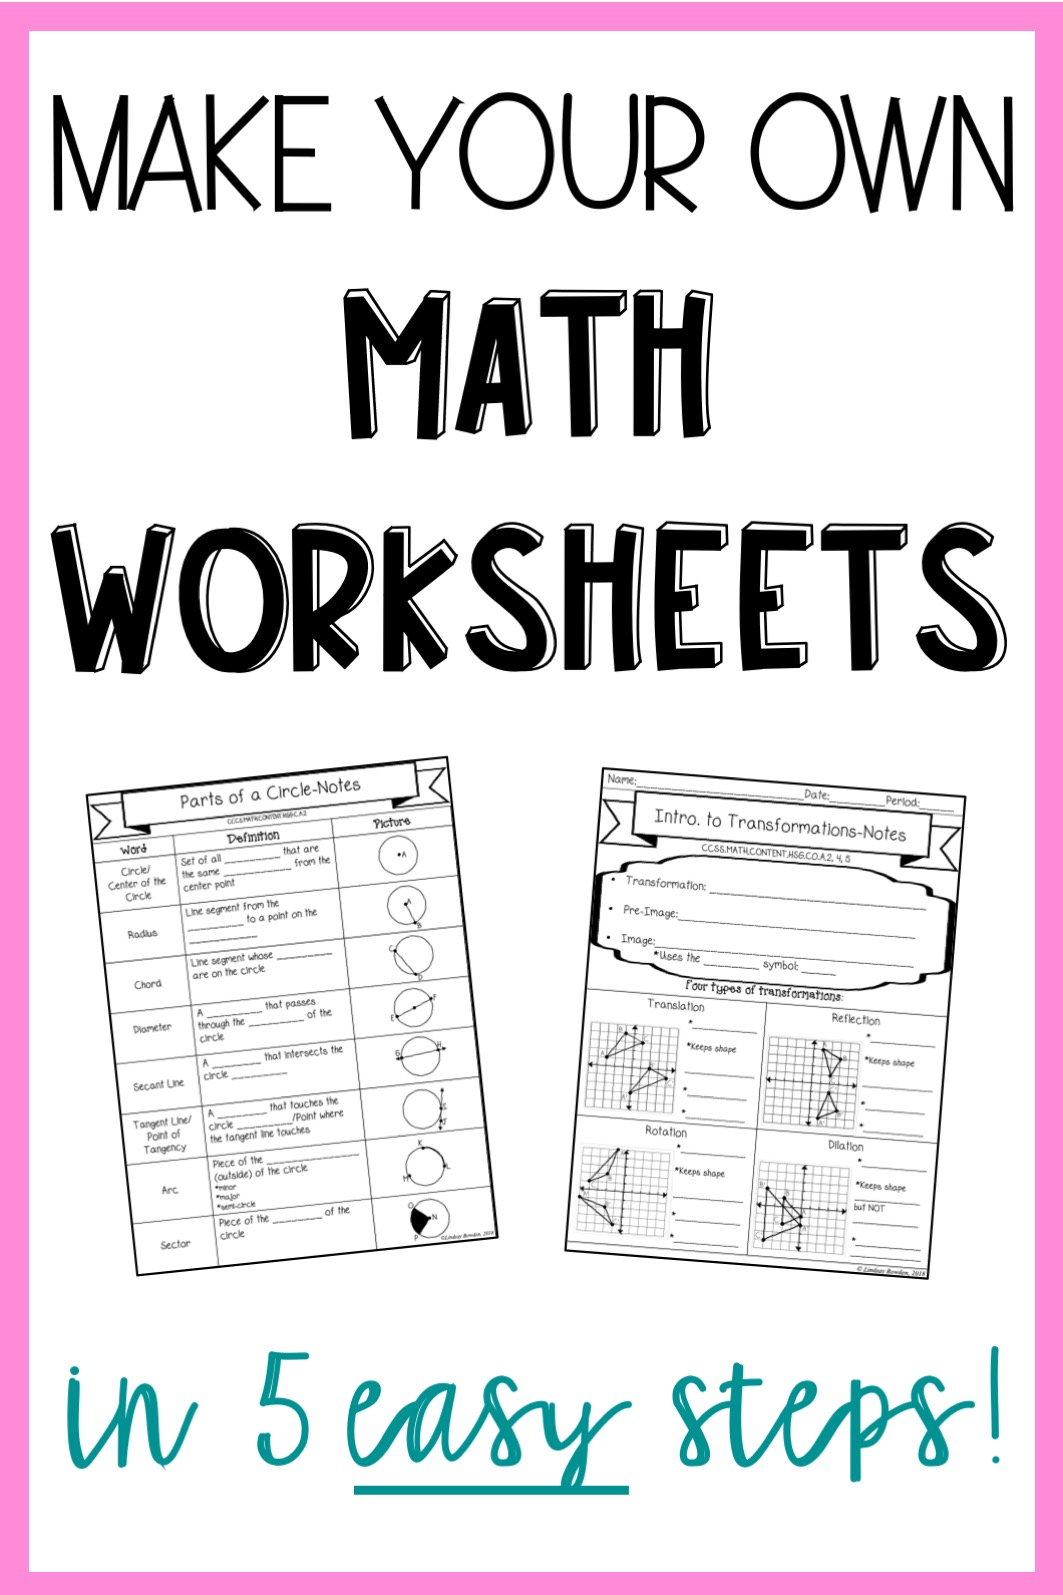 Make Your Own Math Worksheets